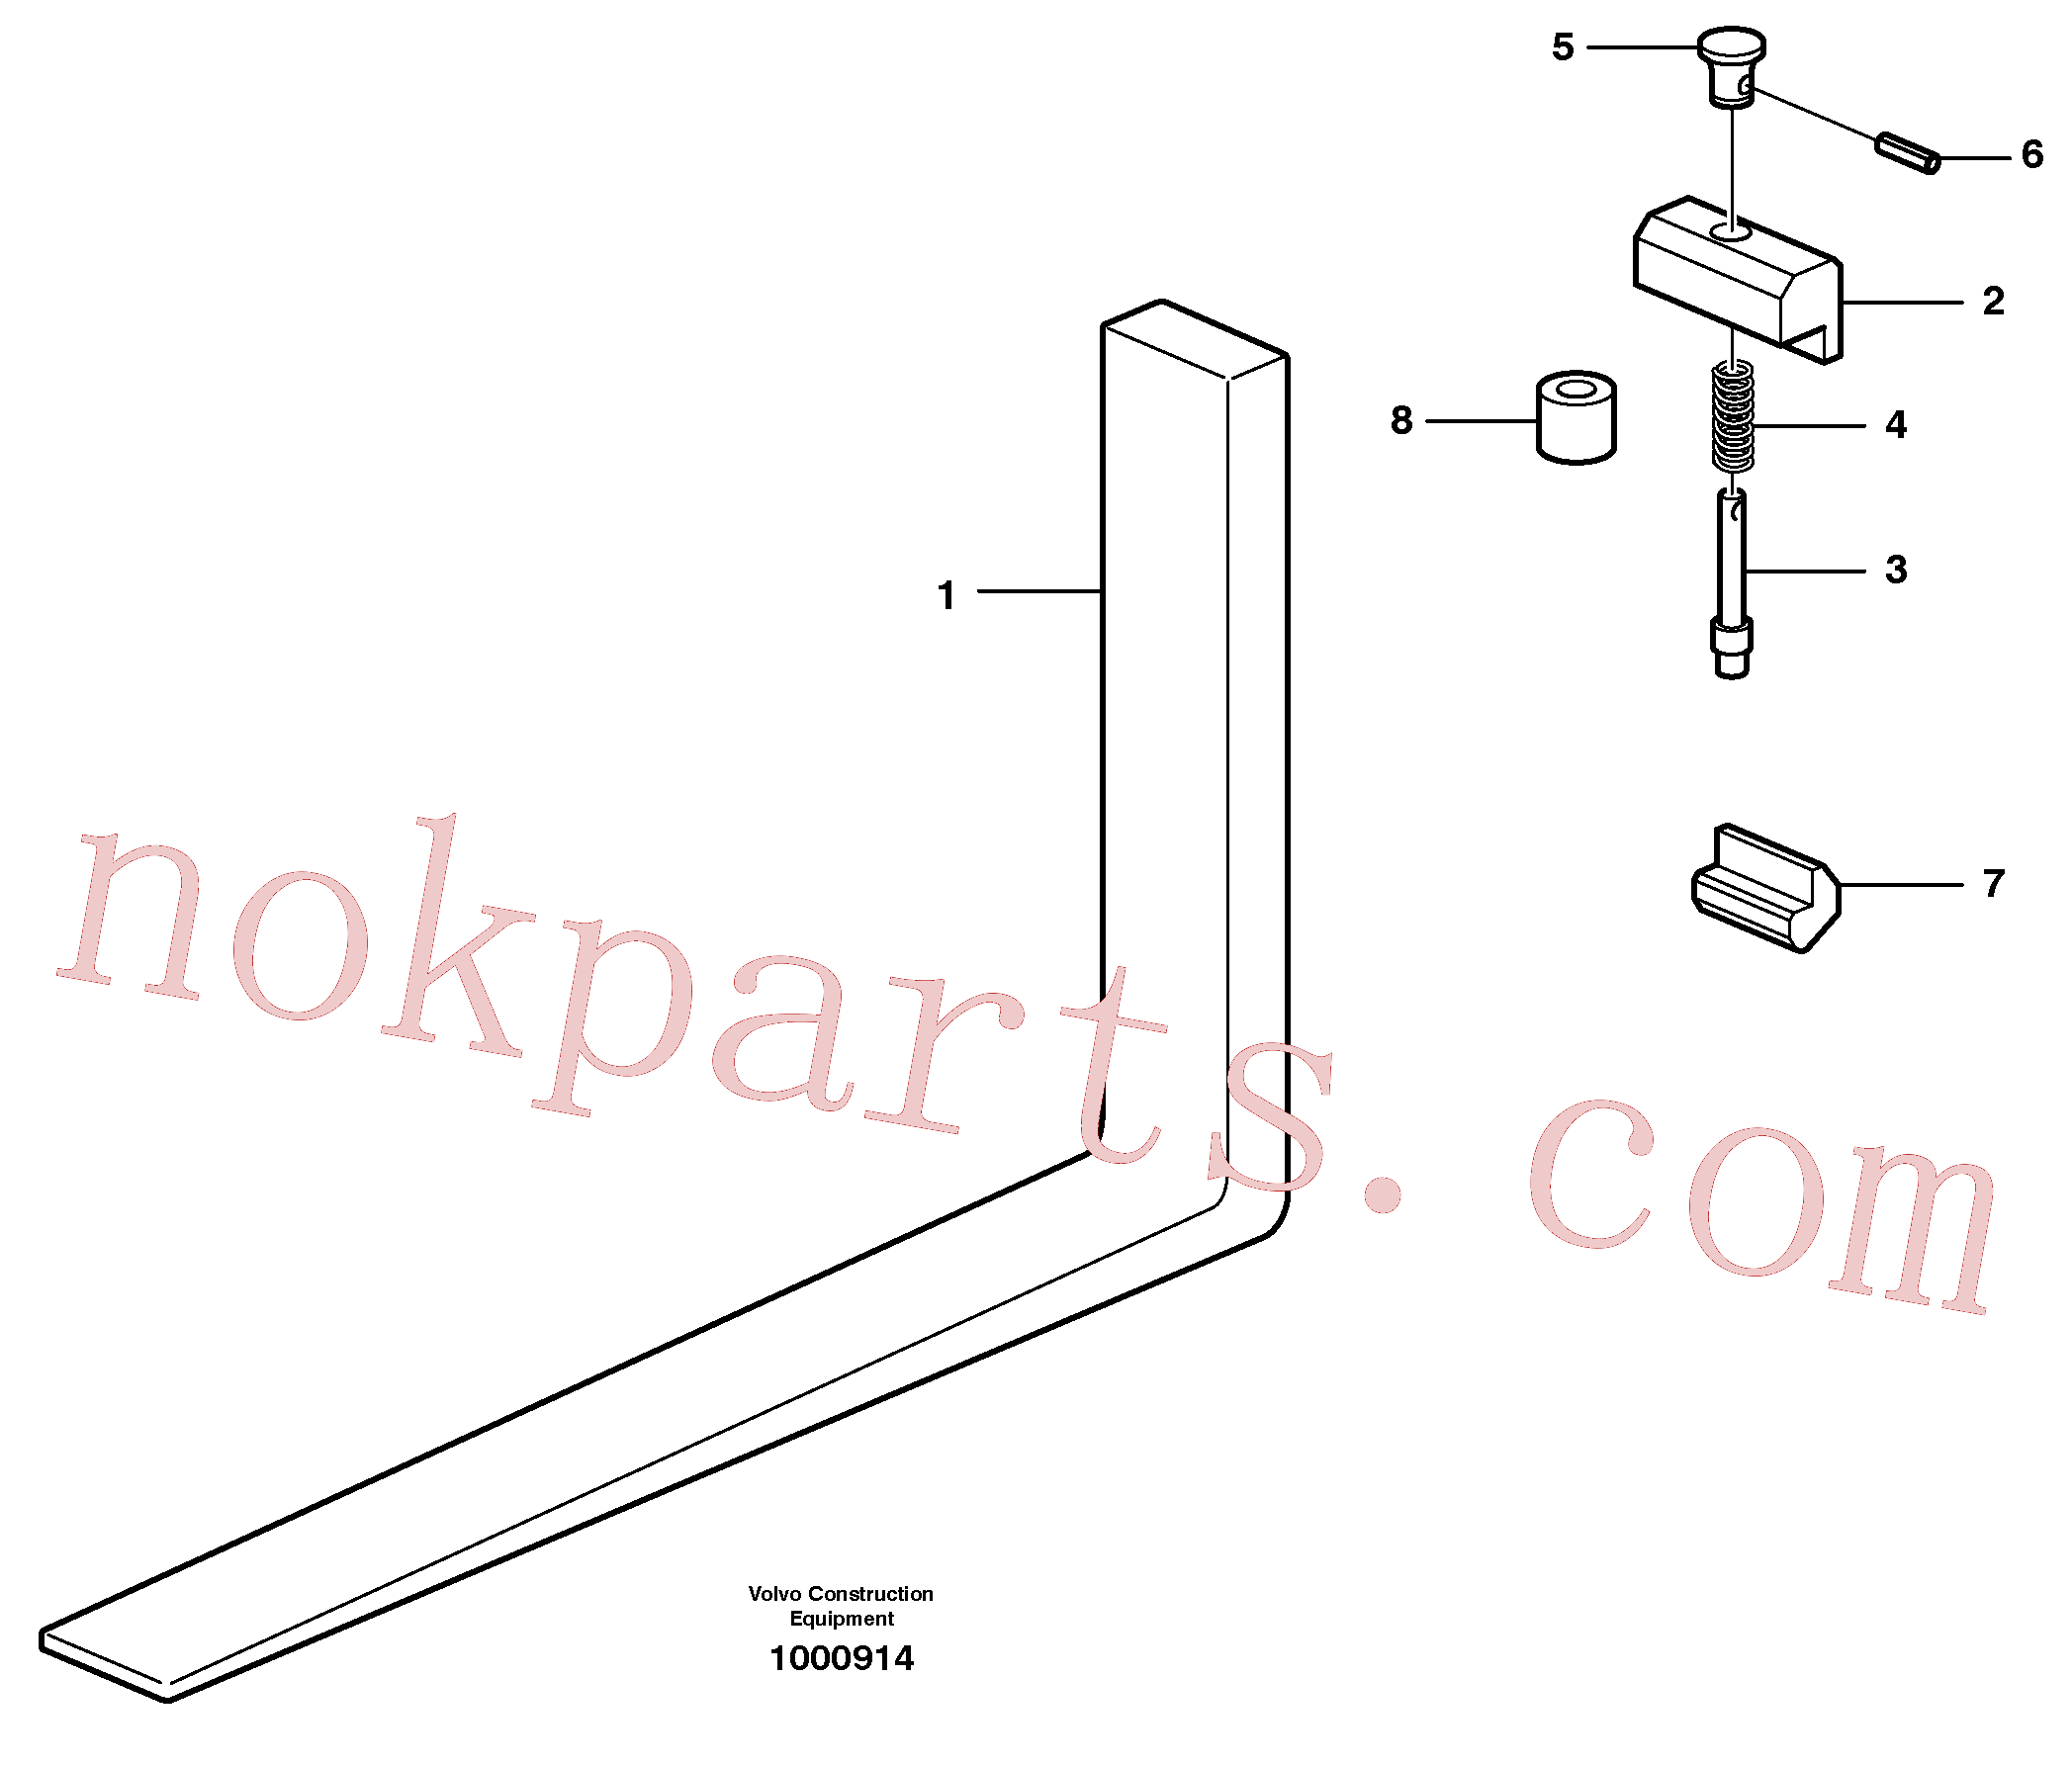 VOE11111317 for Volvo Fork tines(1000914 assembly)